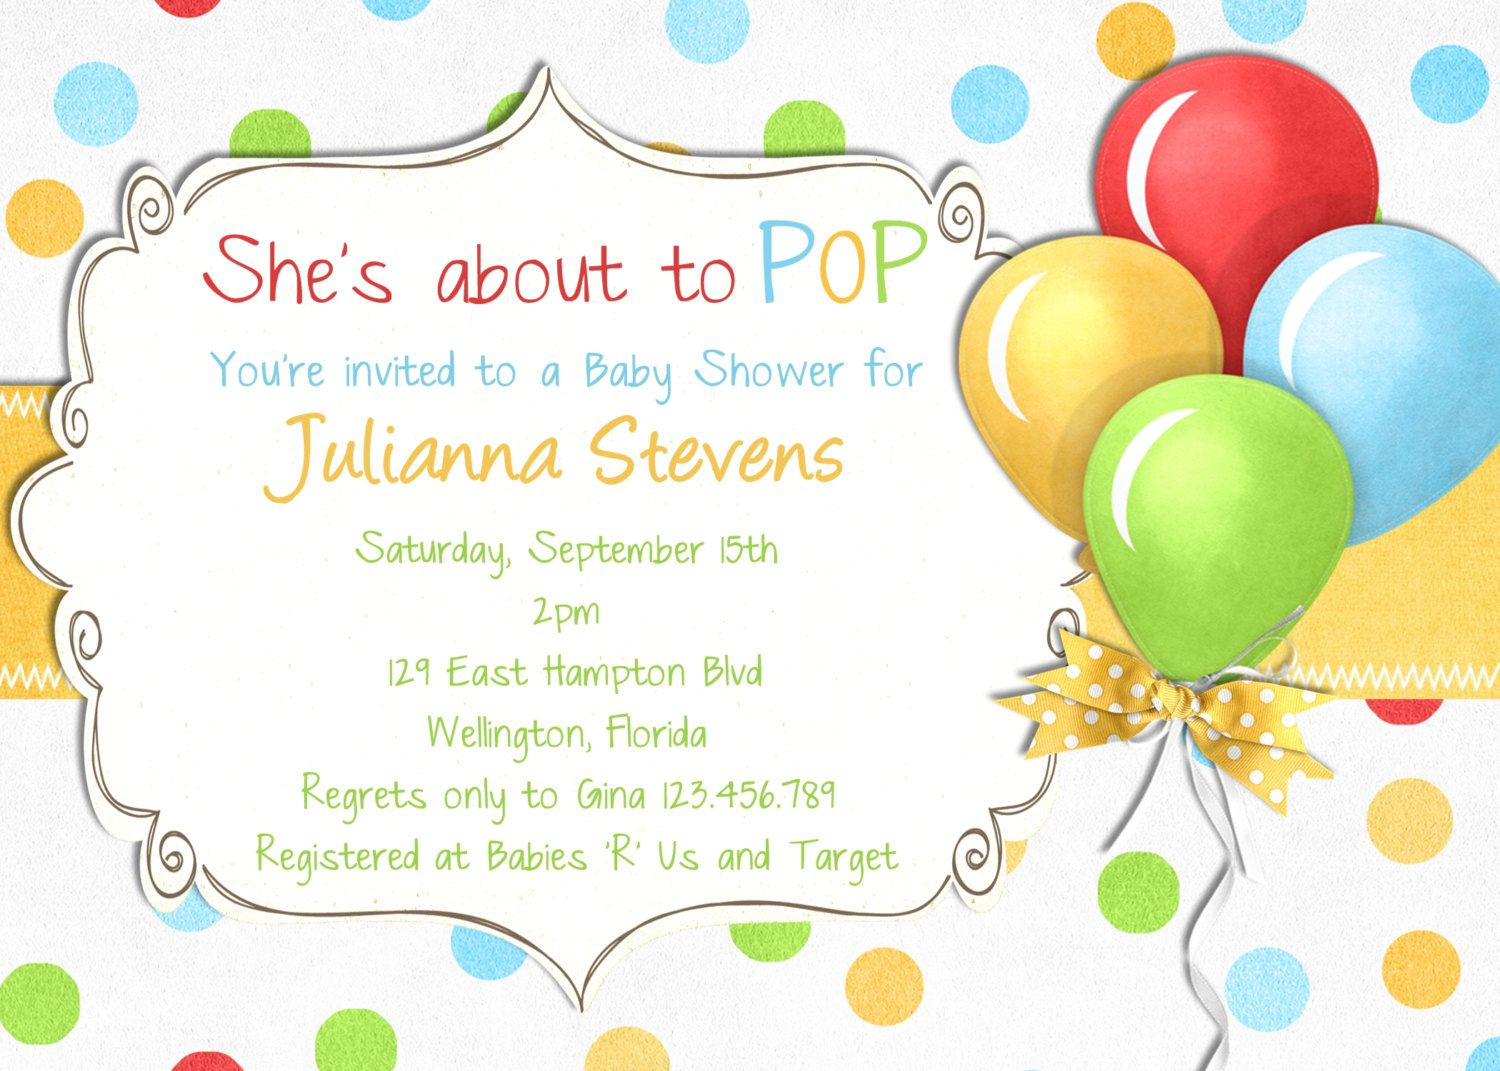 Baby Shower Reveal Invitations with beautiful invitations design